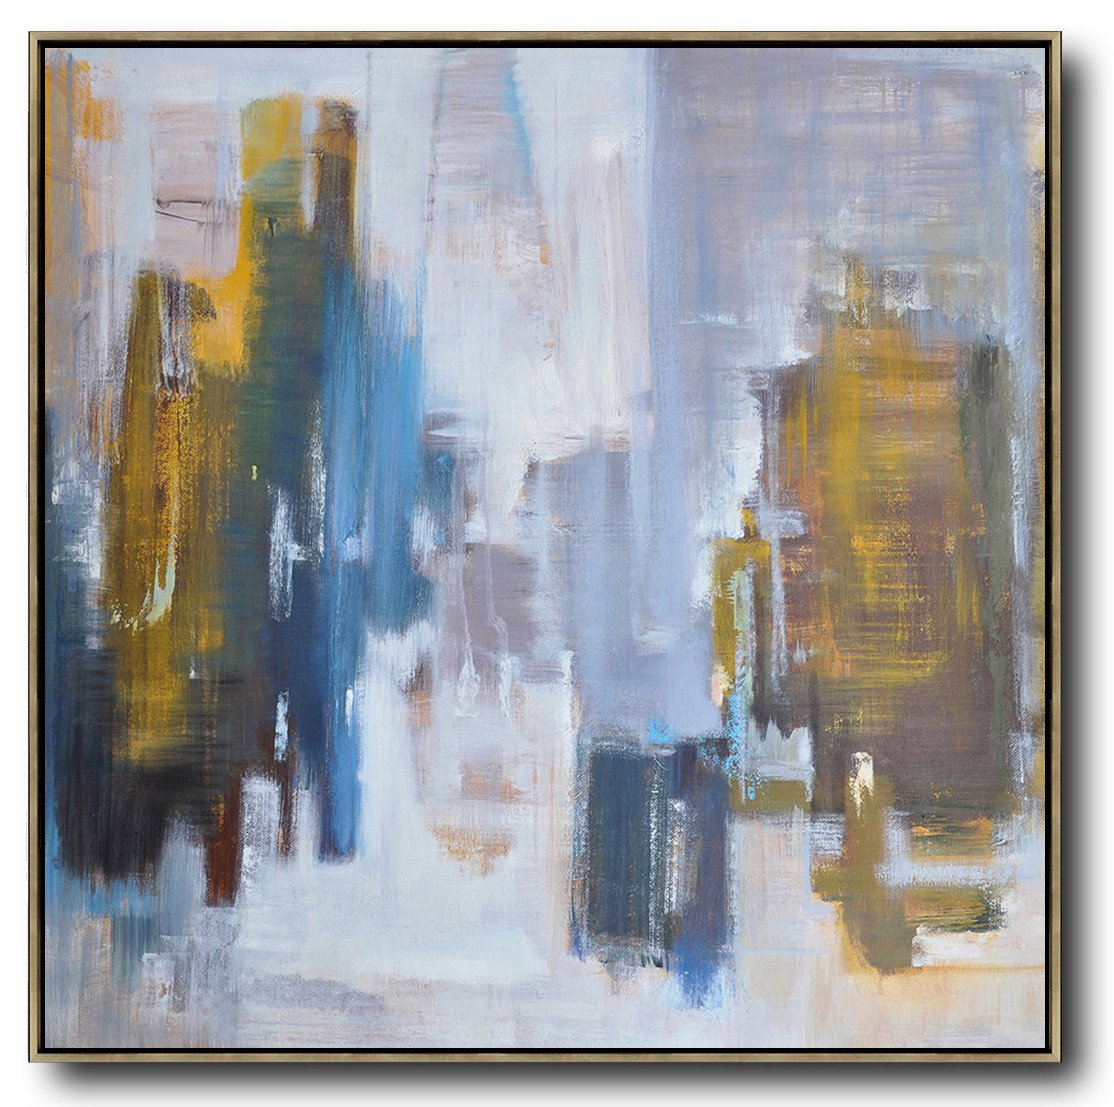 Extra Large Acrylic Painting On Canvas,Abstract Landscape Oil Painting,Huge Abstract Canvas Art,White,Purple Grey,Yellow,Blue.etc